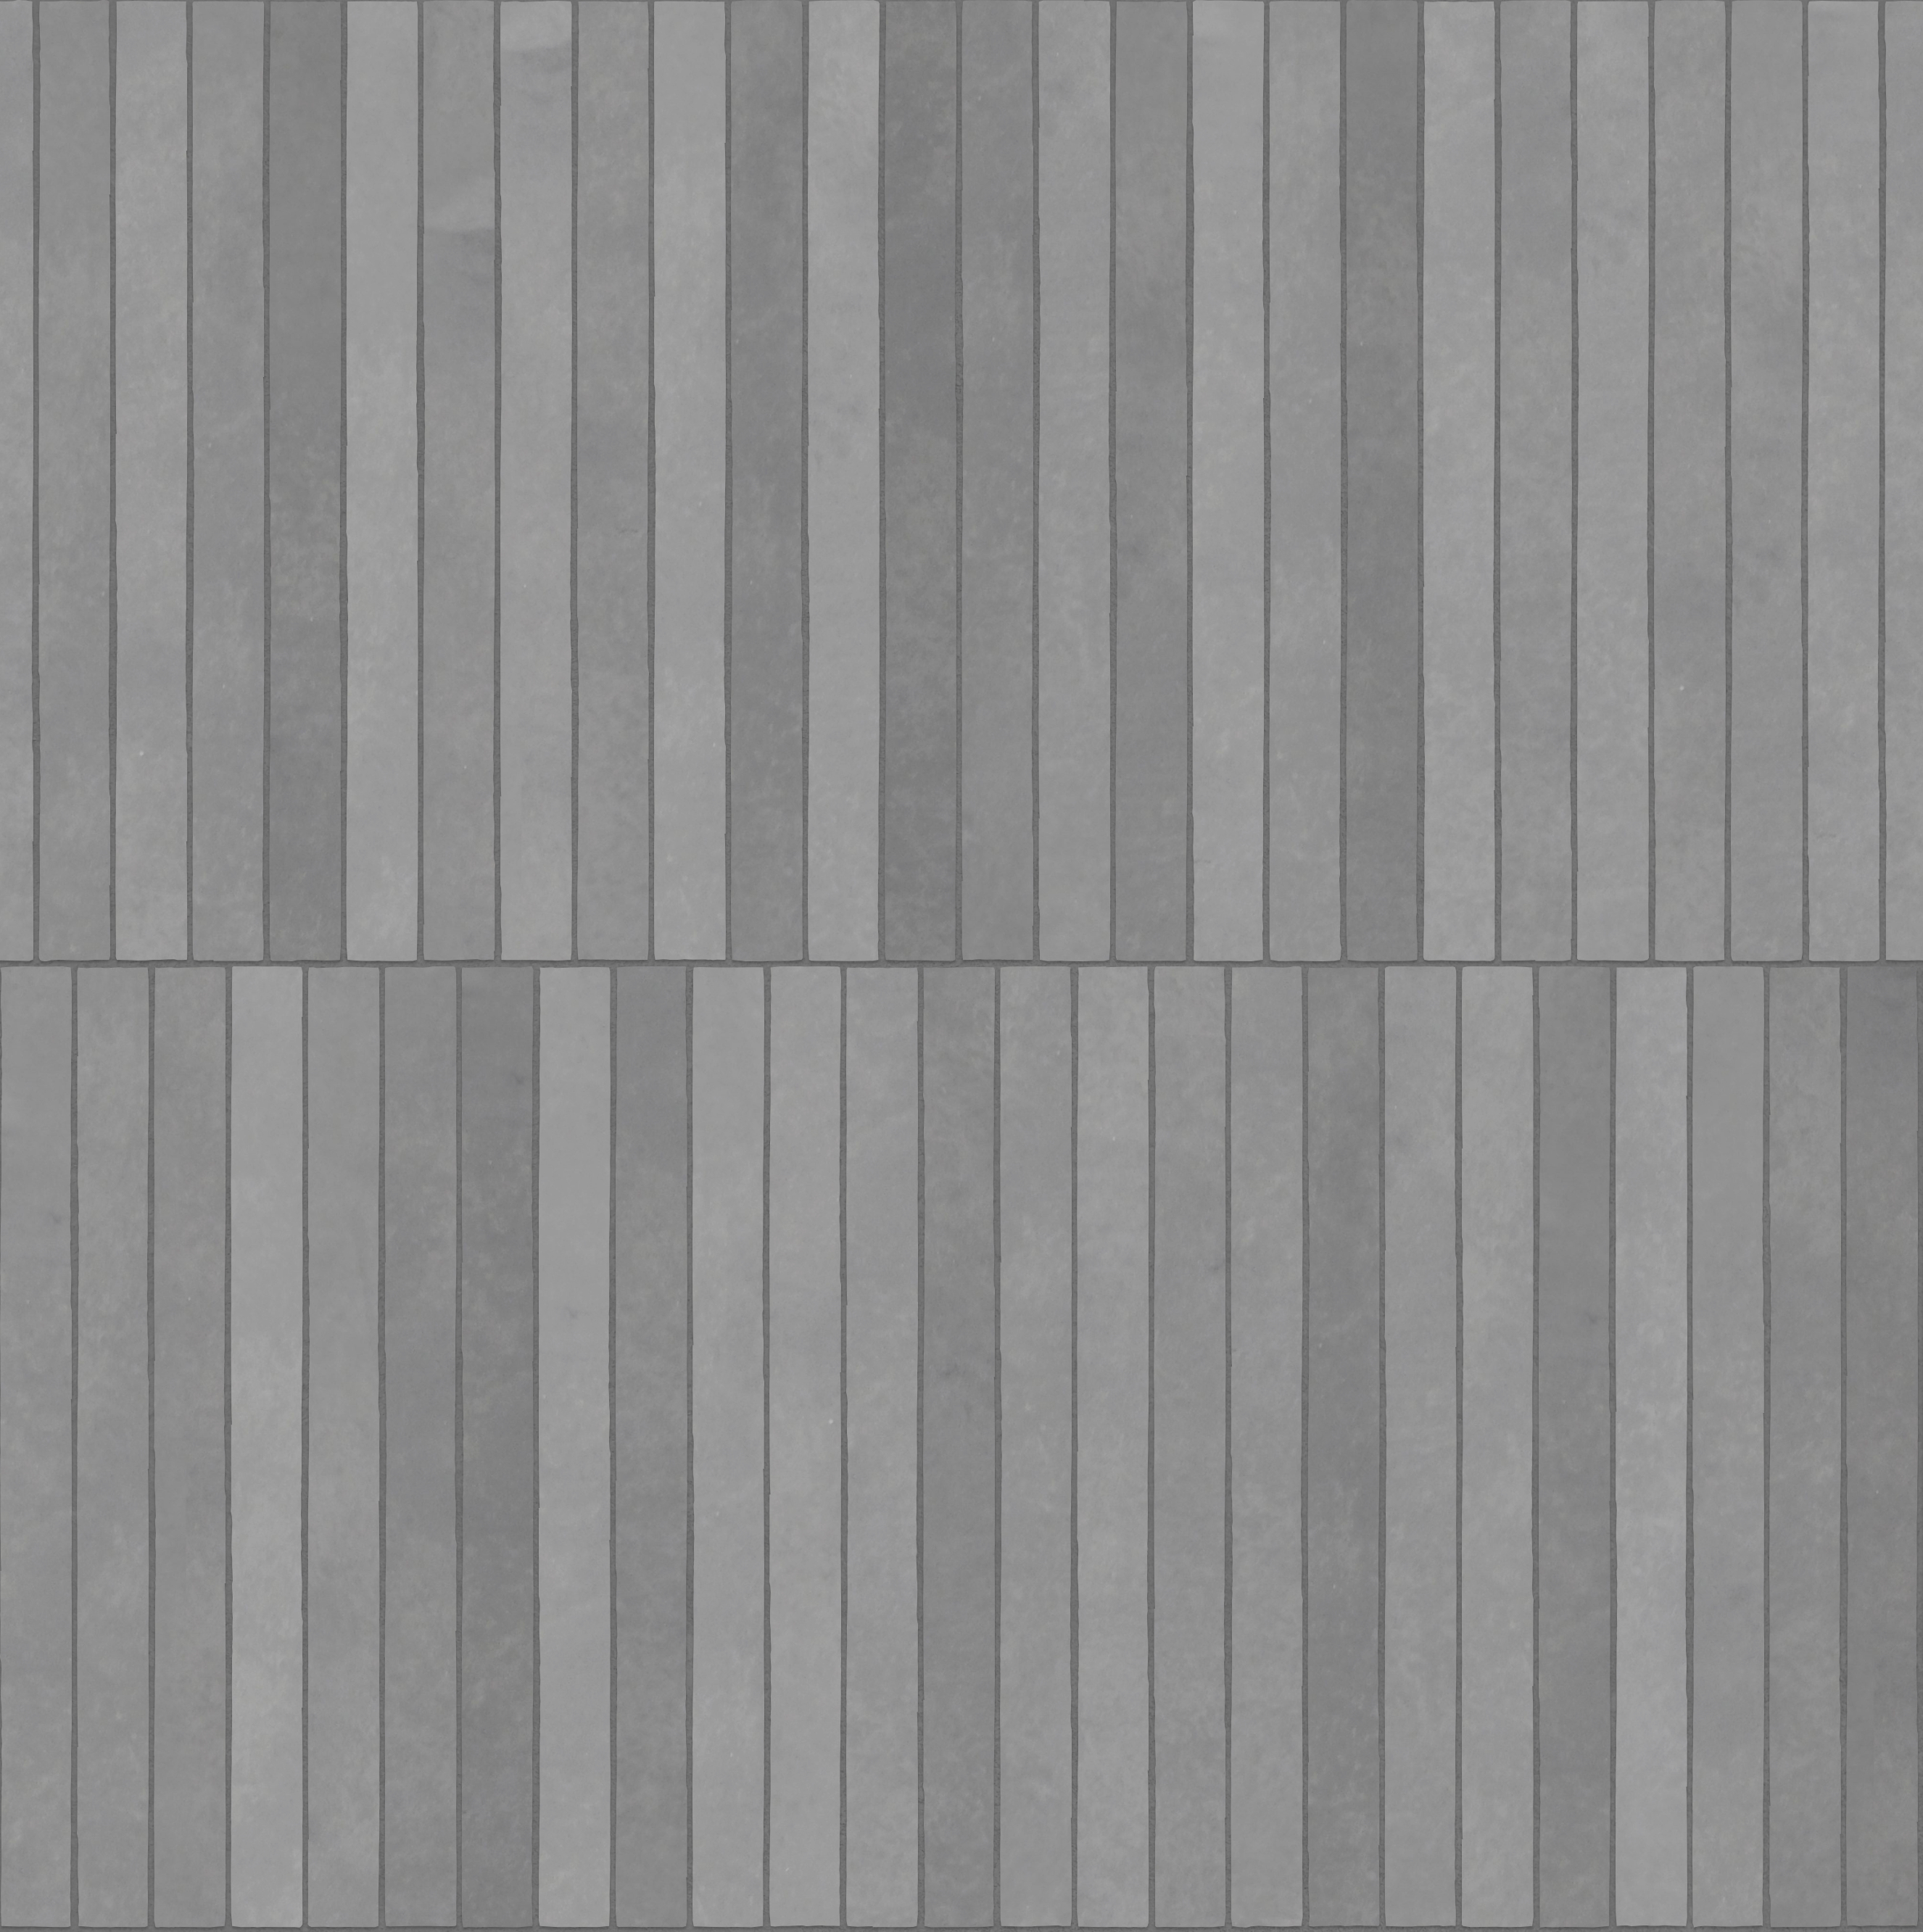 A seamless concrete texture with polished concrete blocks arranged in a stretcher pattern